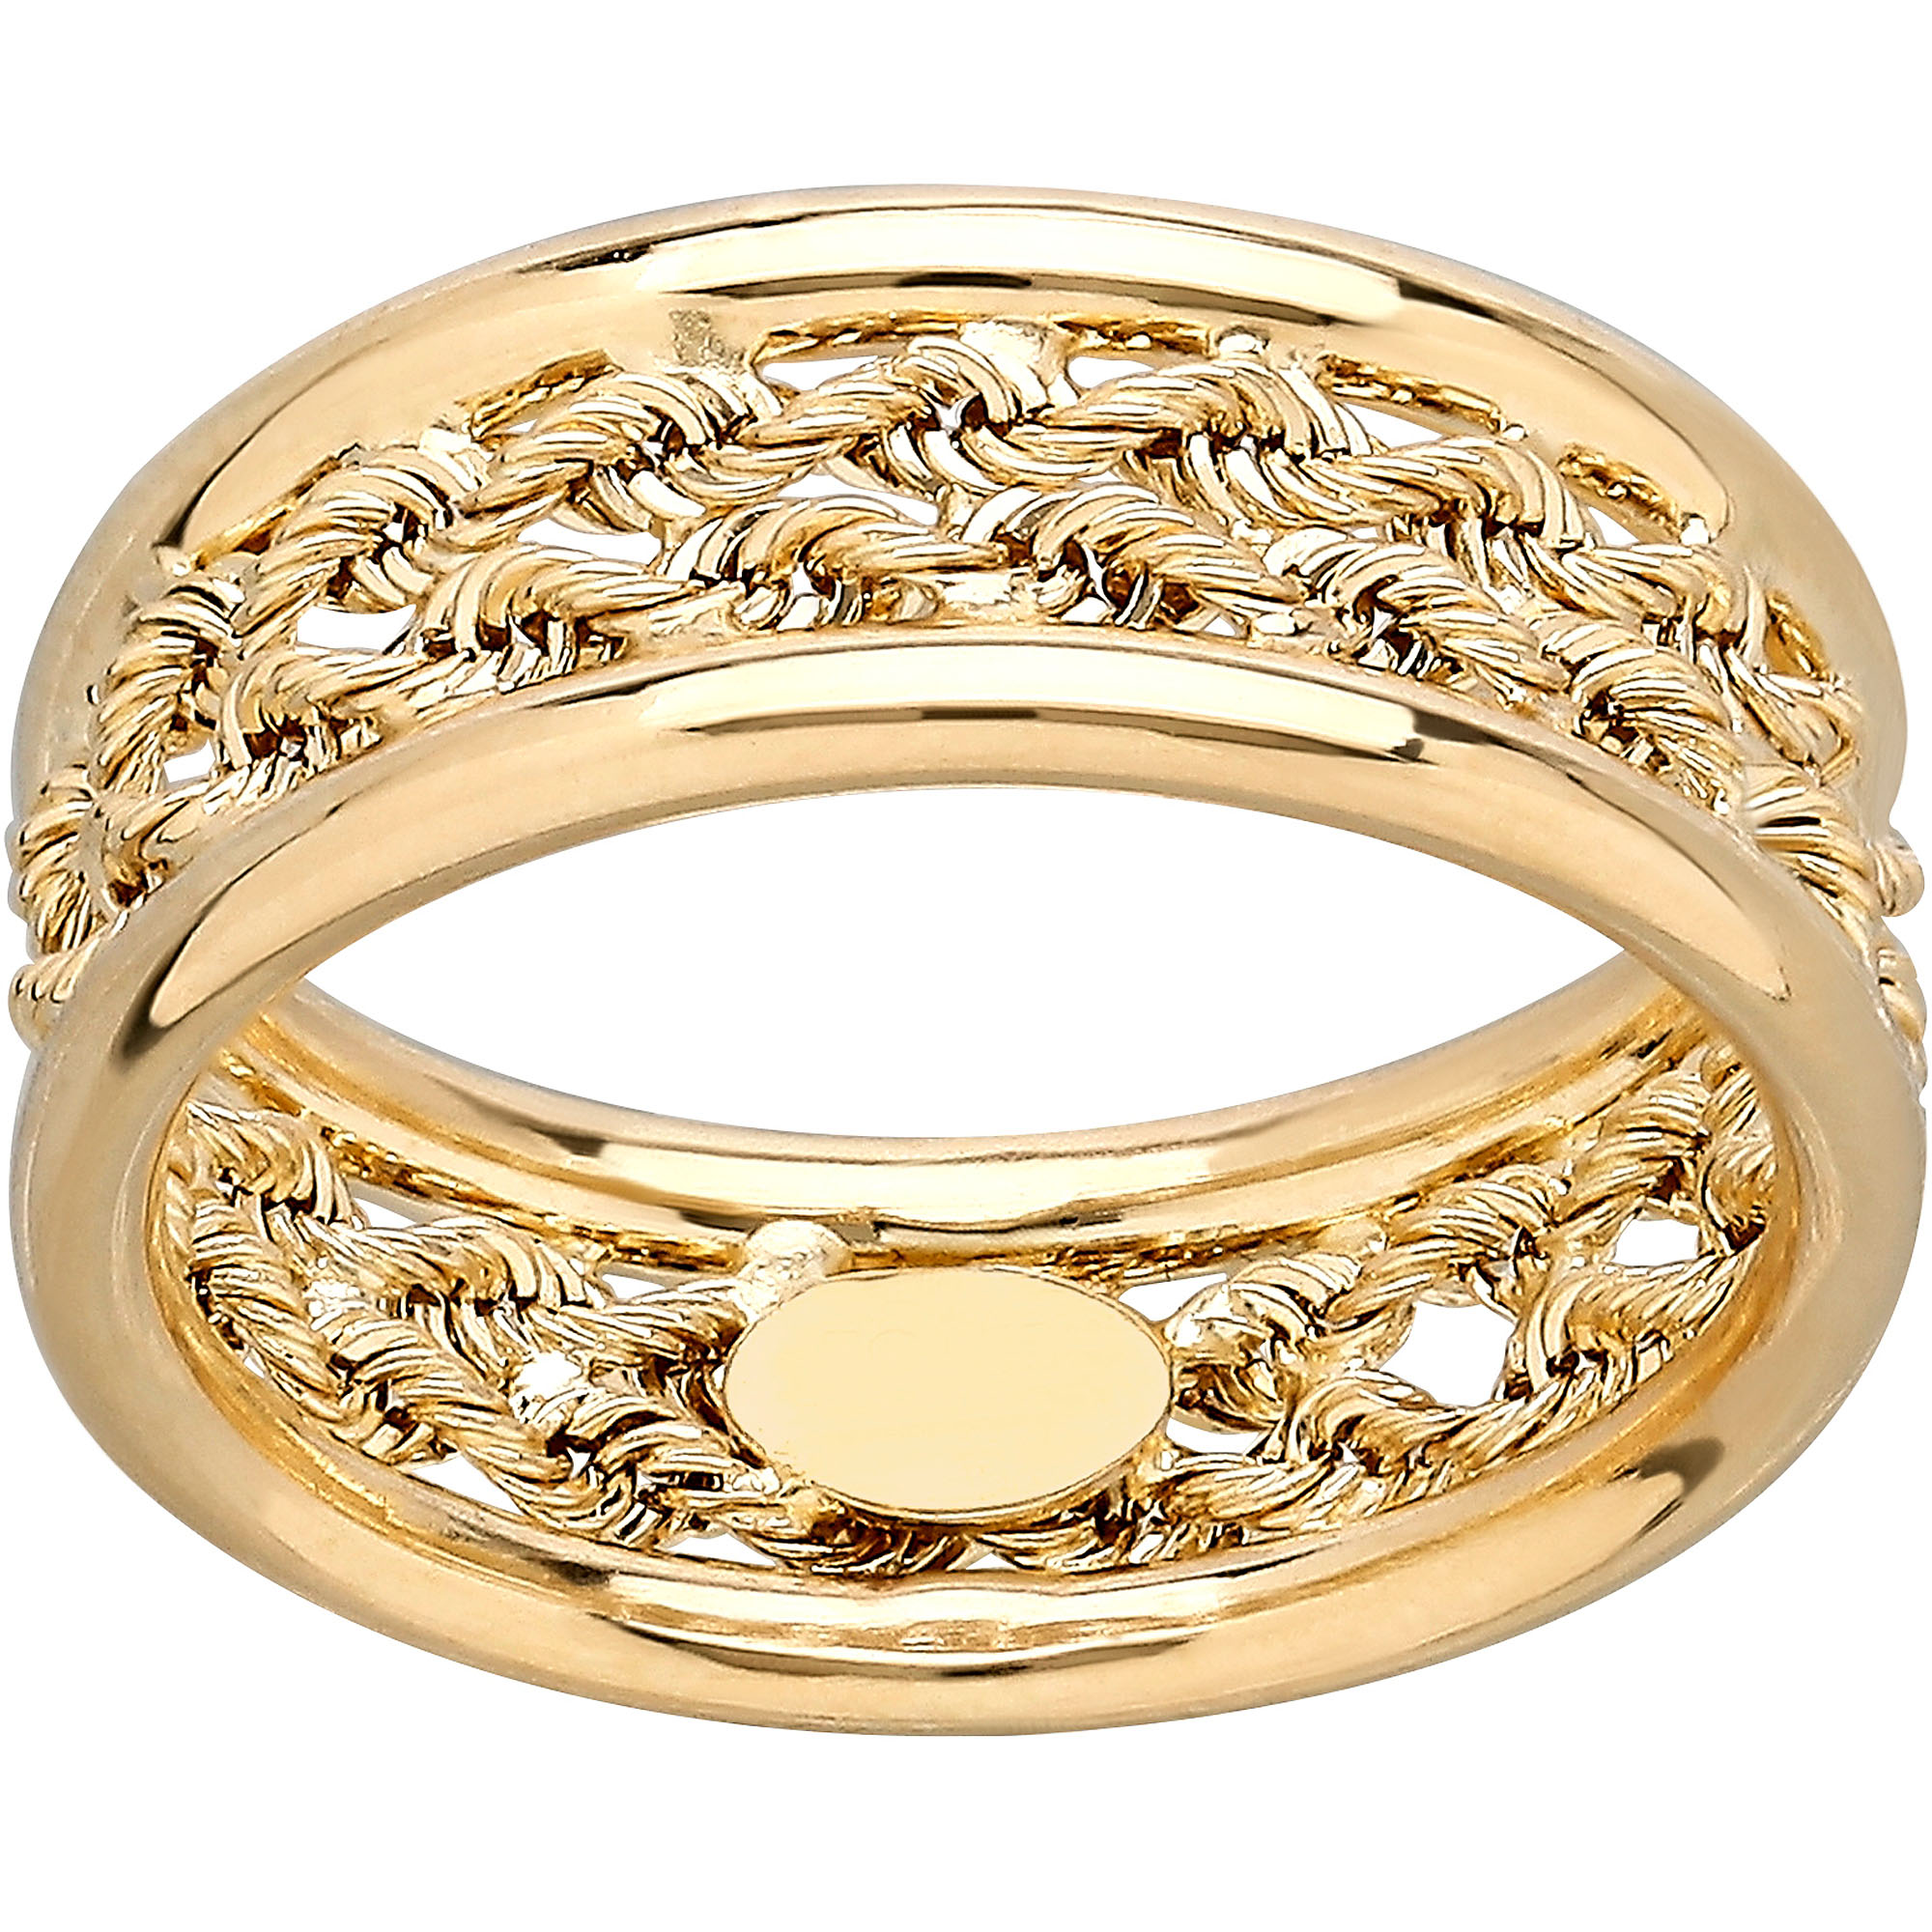 Simply Gold 10kt Yellow Gold Rope Center Size 7 Ring